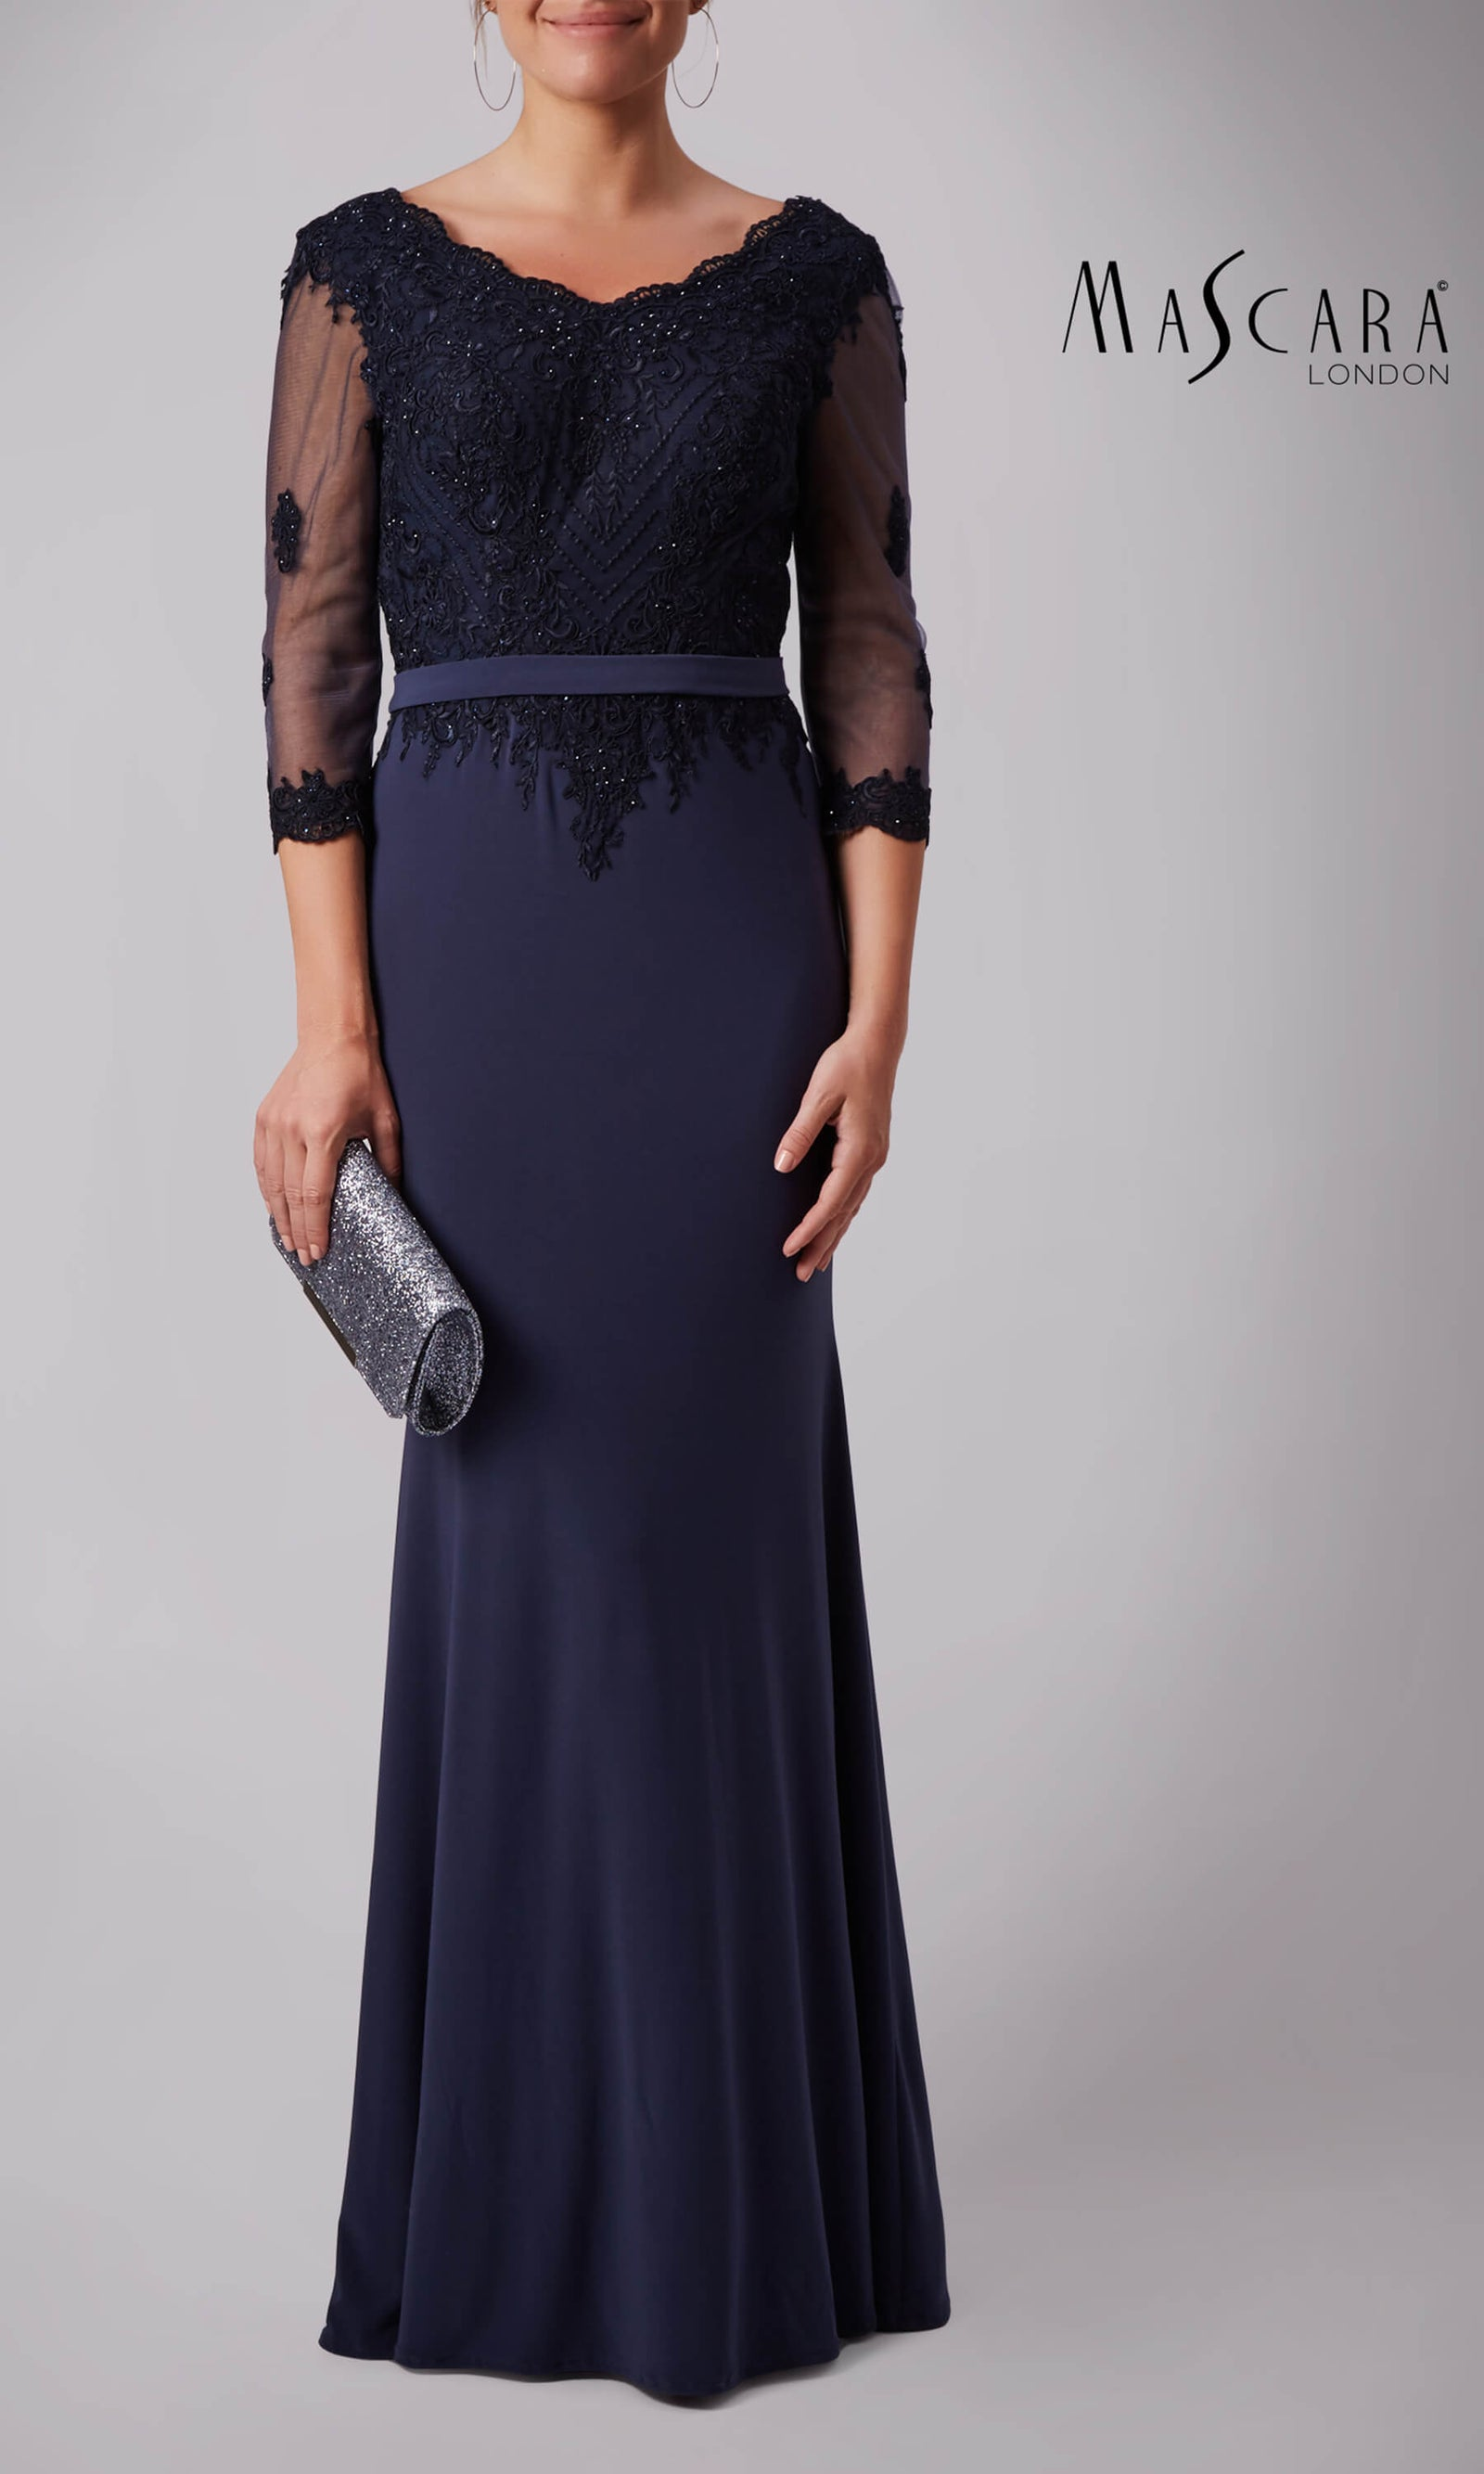 MC181385 Charcoal Mascara Evening Dress With Sleeves - Fab Frocks